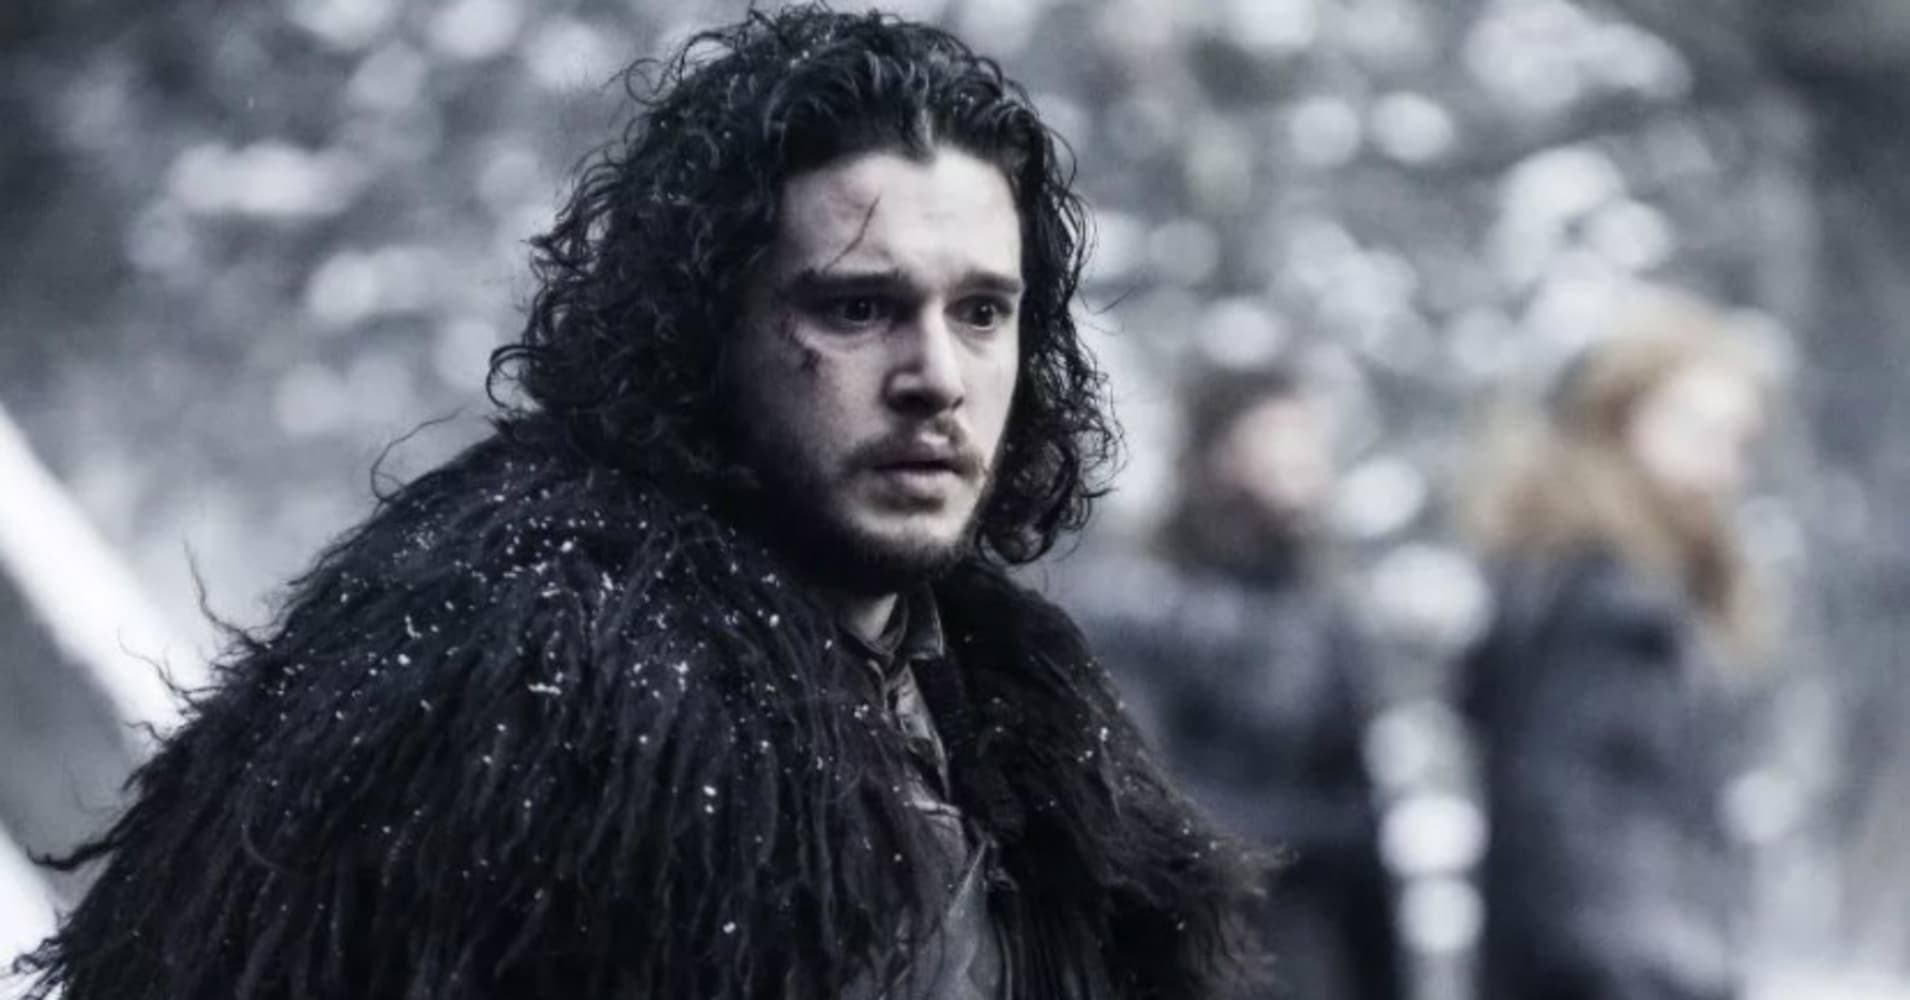 Game of Thrones Season 8 episode 1 streamed early by AT&T